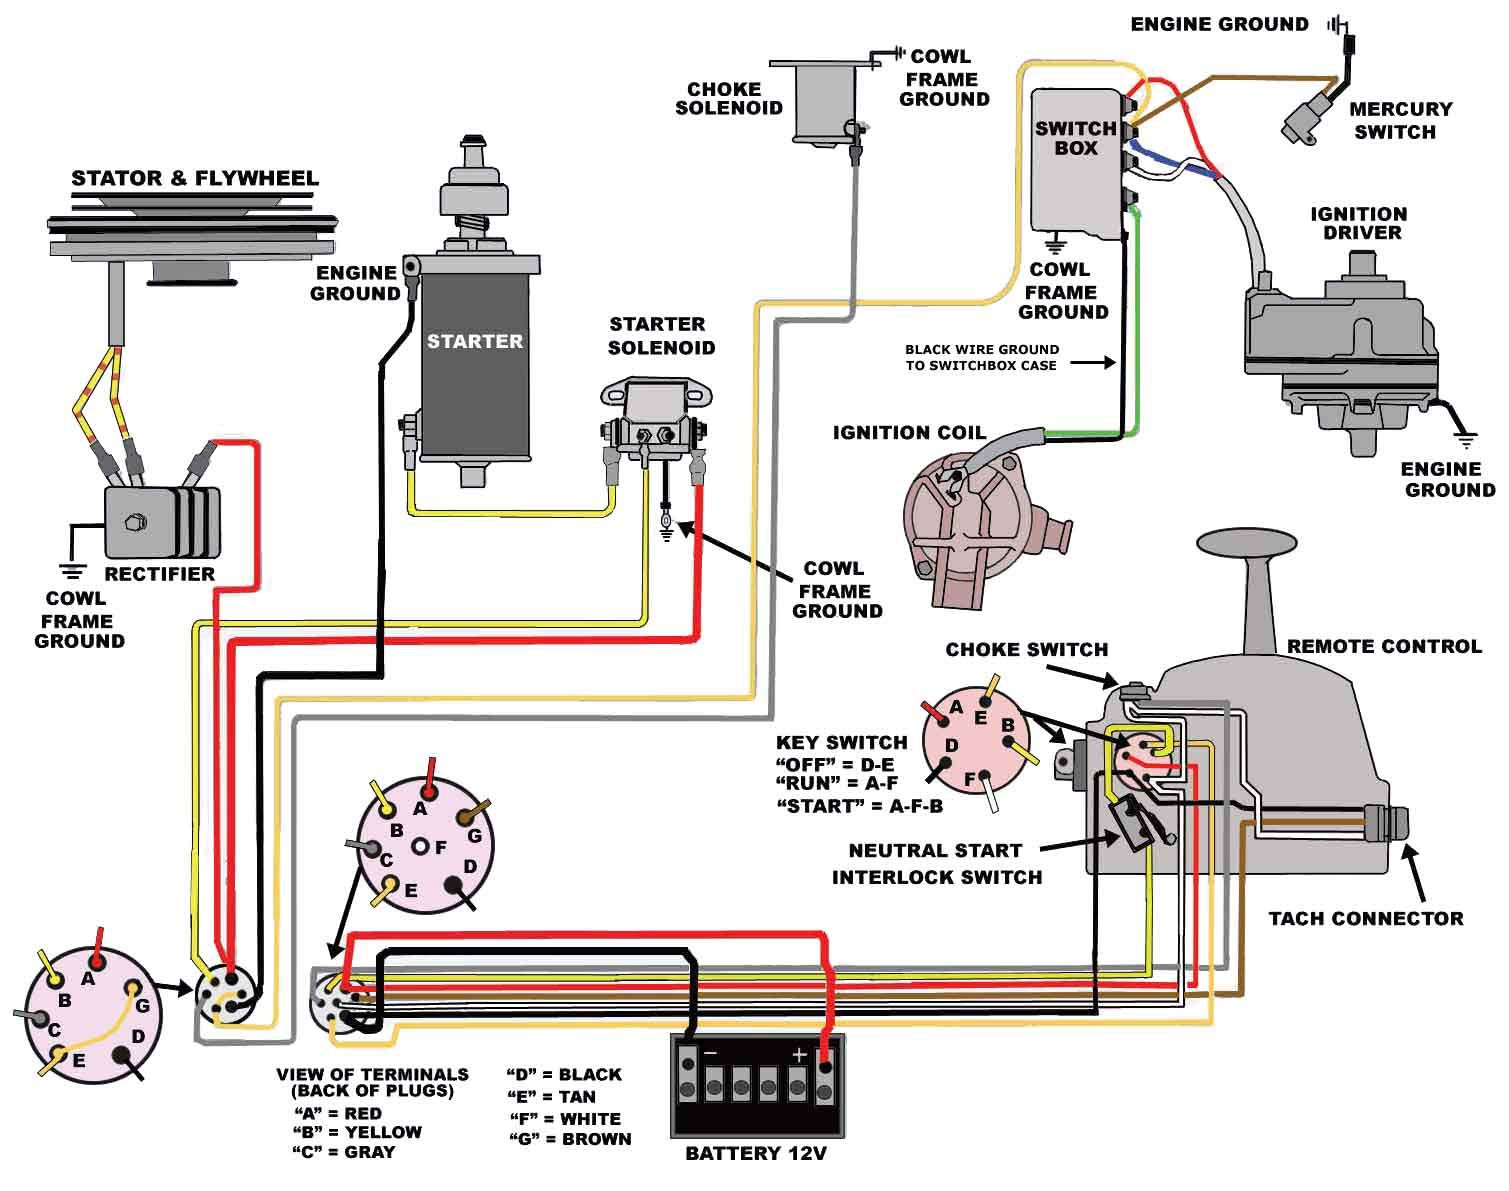 mercury outboard wiring diagram diagram pinterest mercury outboard rh pinterest com au thunderbolt 4 wiring diagram thunderbolt iv ignition wiring diagram